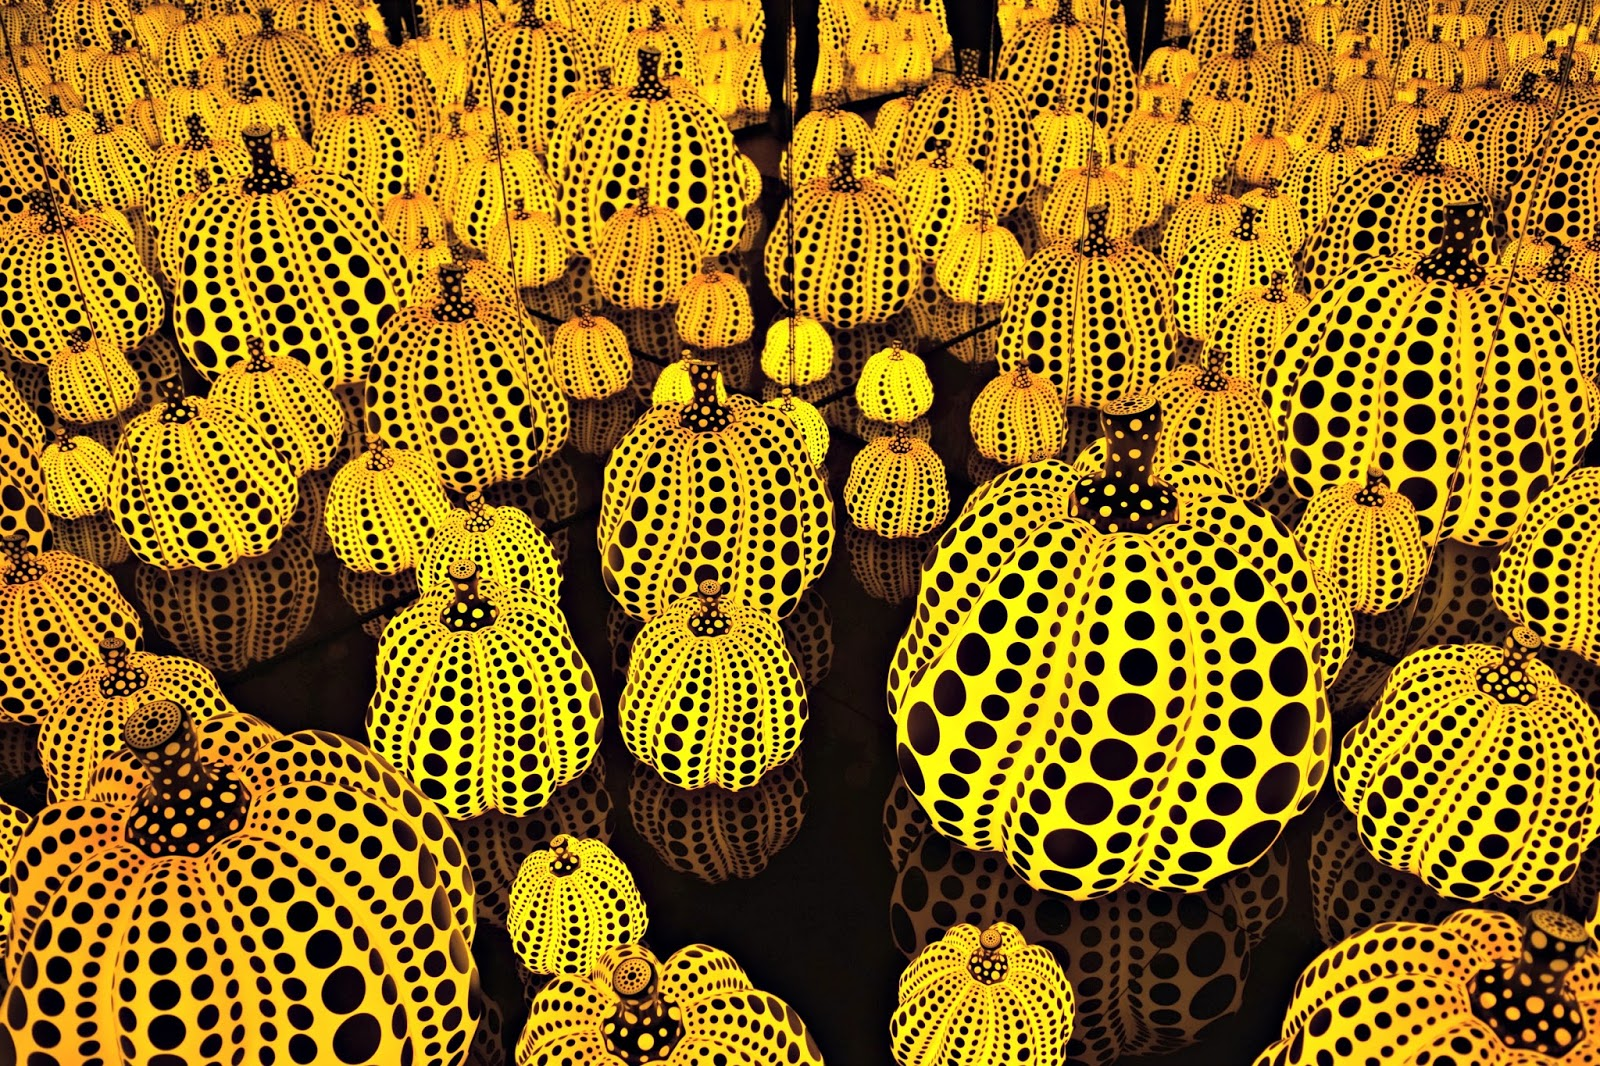 All the eternal love I have for the pumpkins Yayoi Kusama